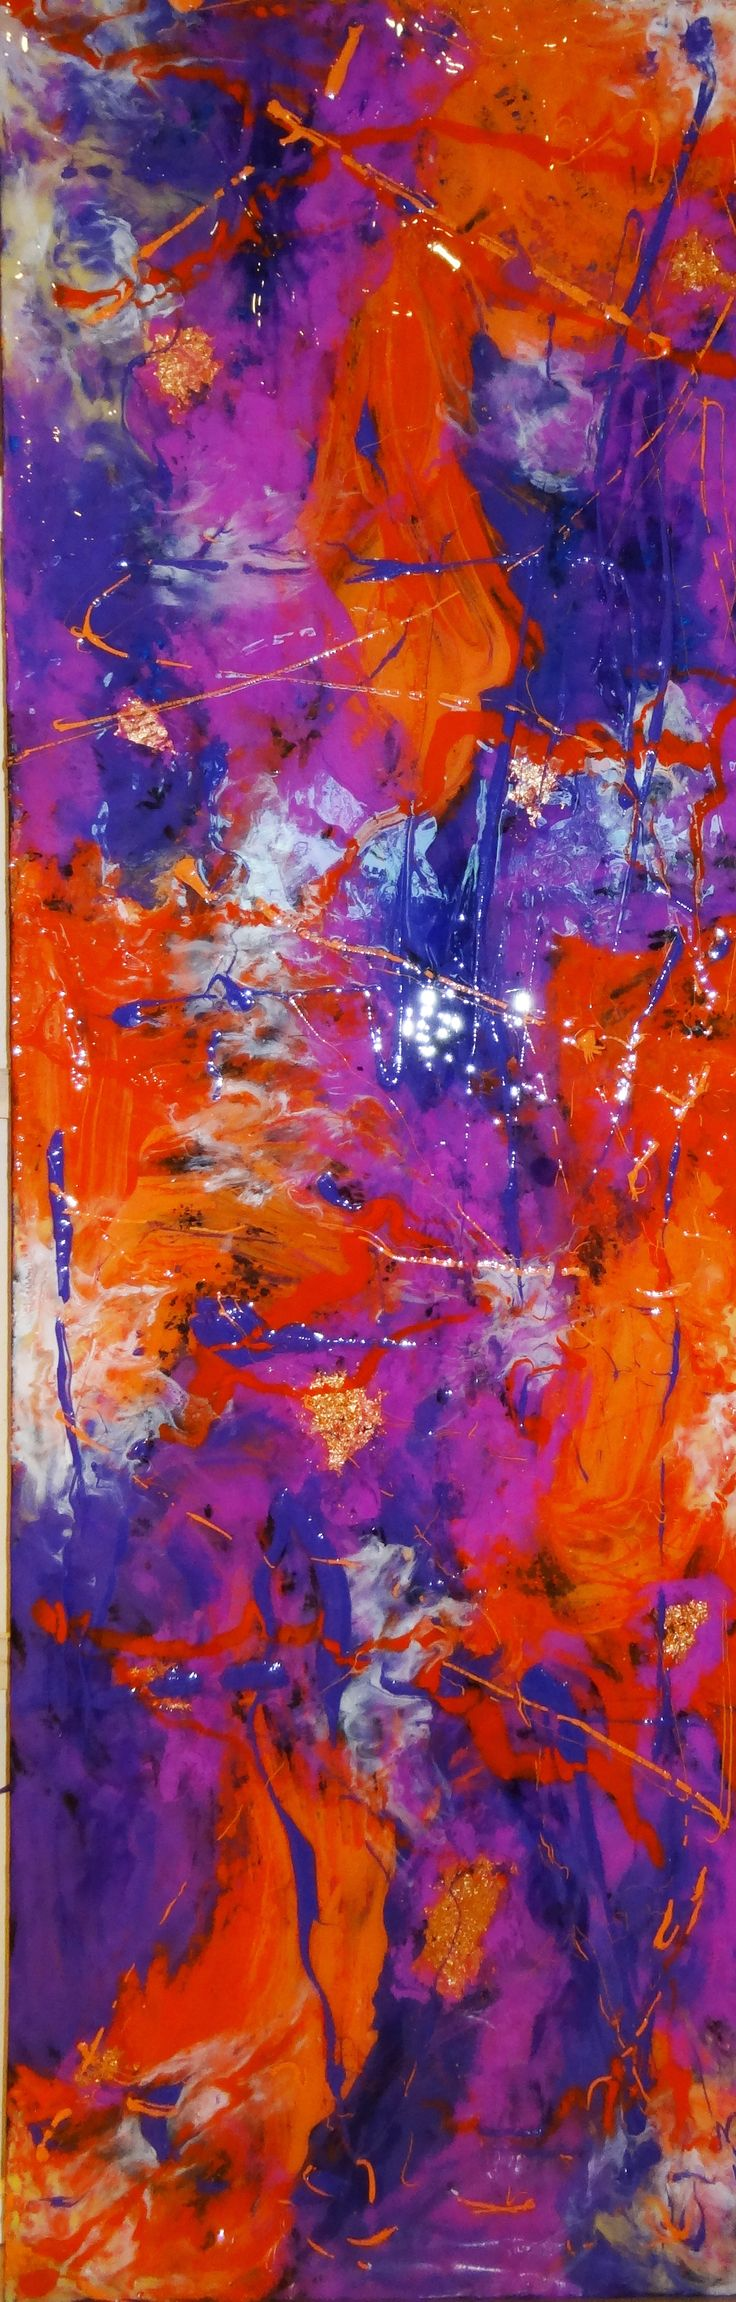 1000 images about PURPLE AND ORANGE on Pinterest  Burnt orange Purple and Violets